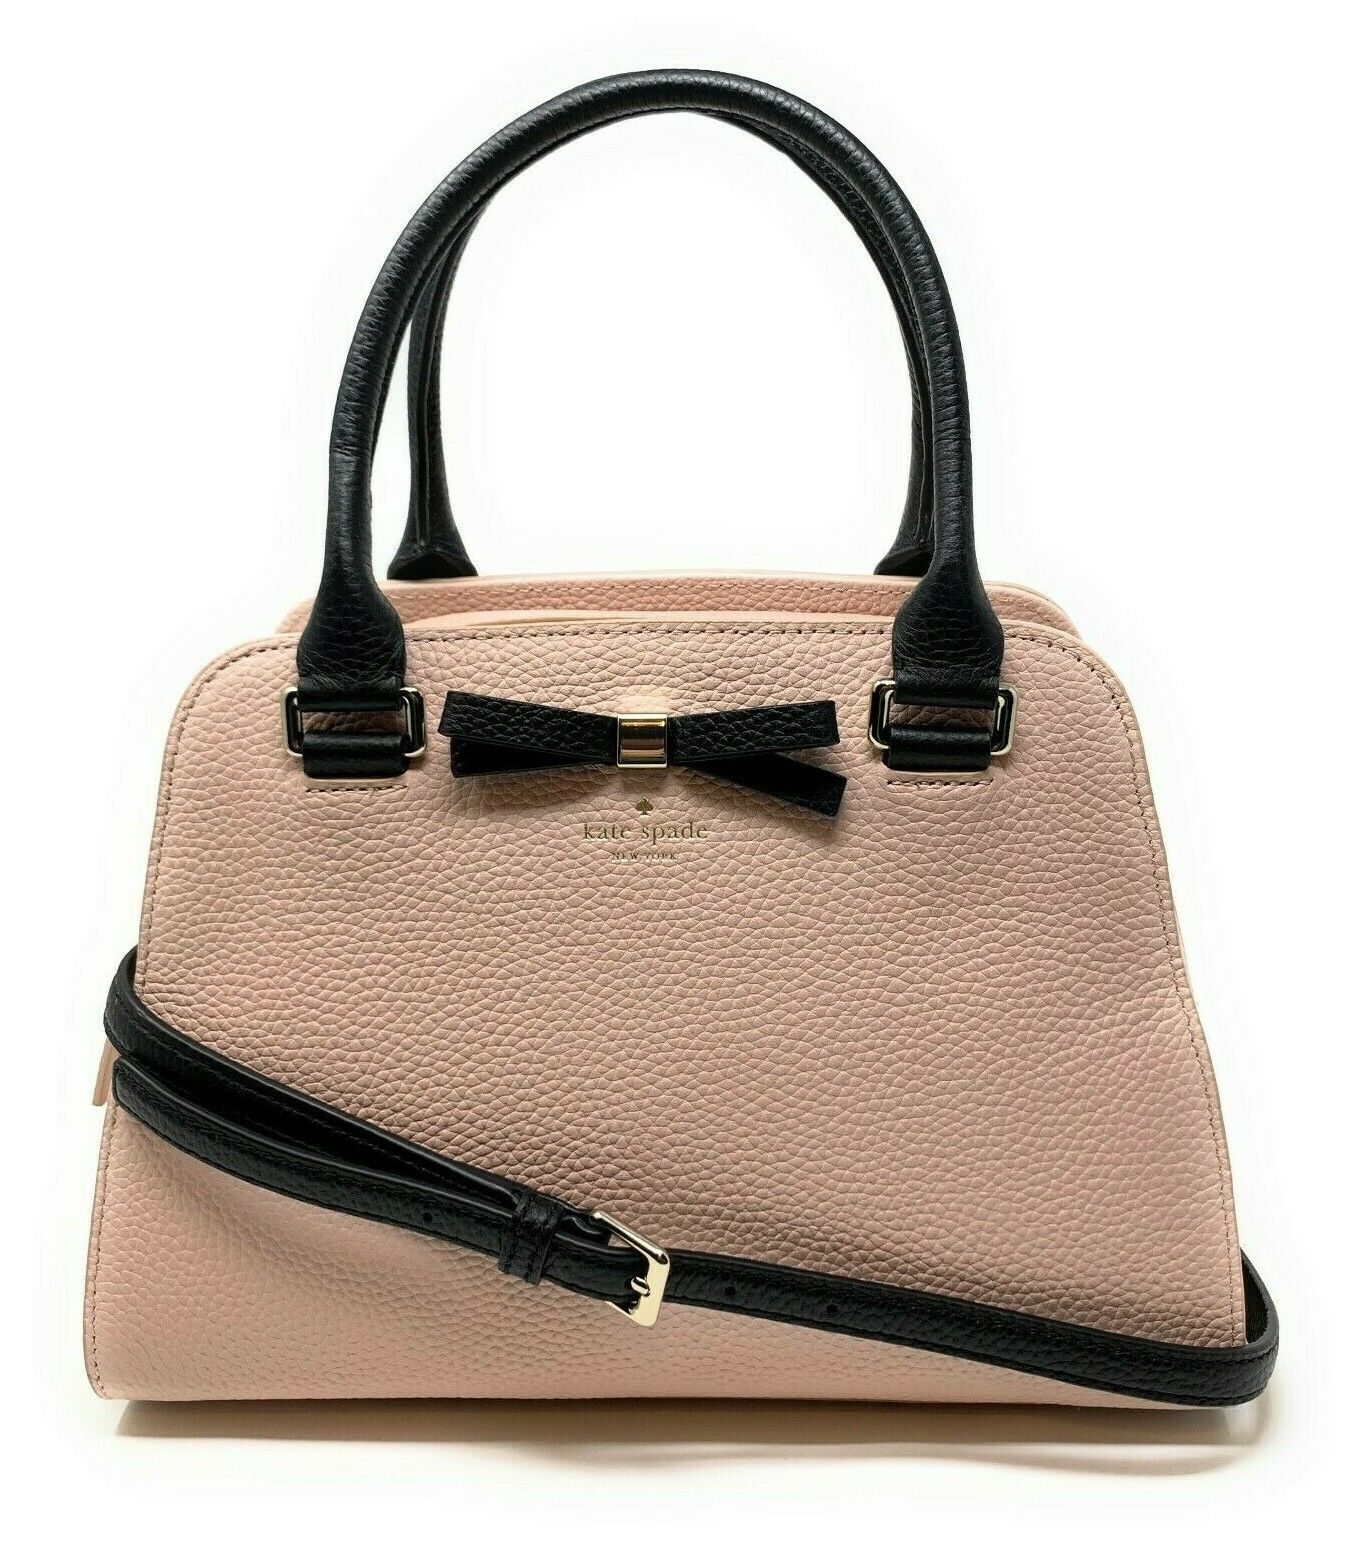 Kate Spade Henderson Street Sawyer Satchel Warm Vellum Leather Handbag WKRU5803 $358